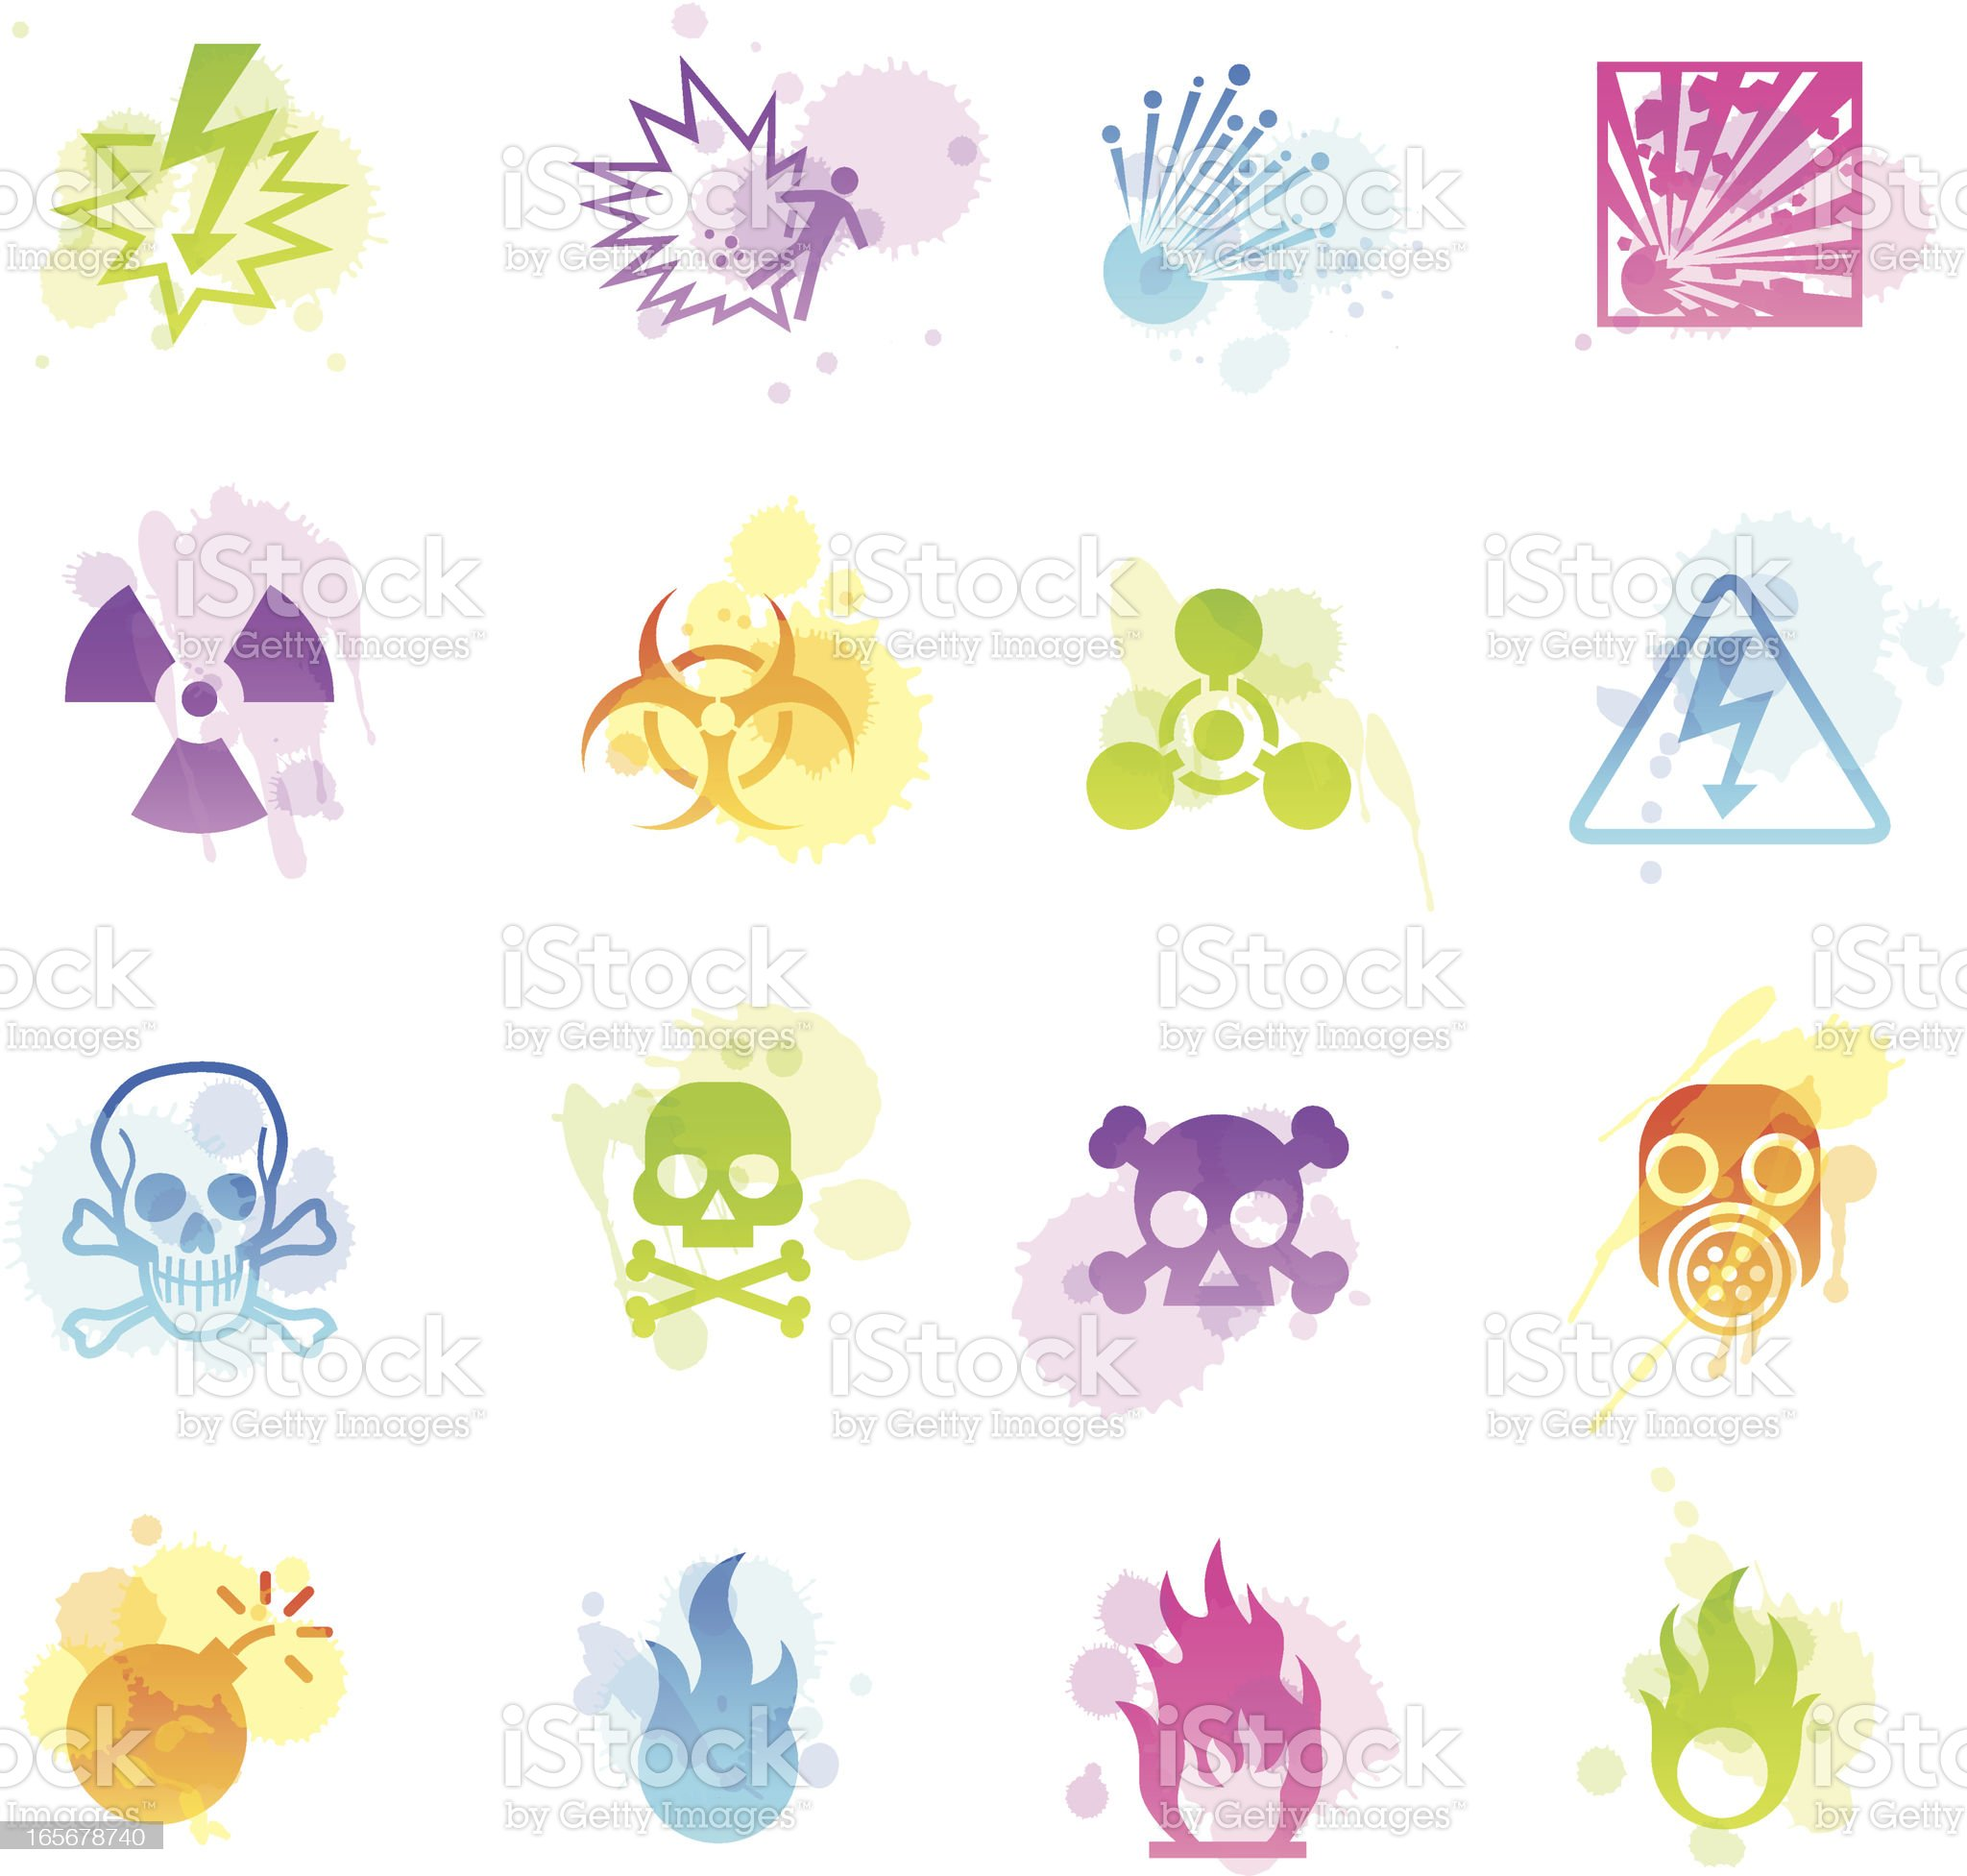 Stains Icons - Danger royalty-free stock vector art